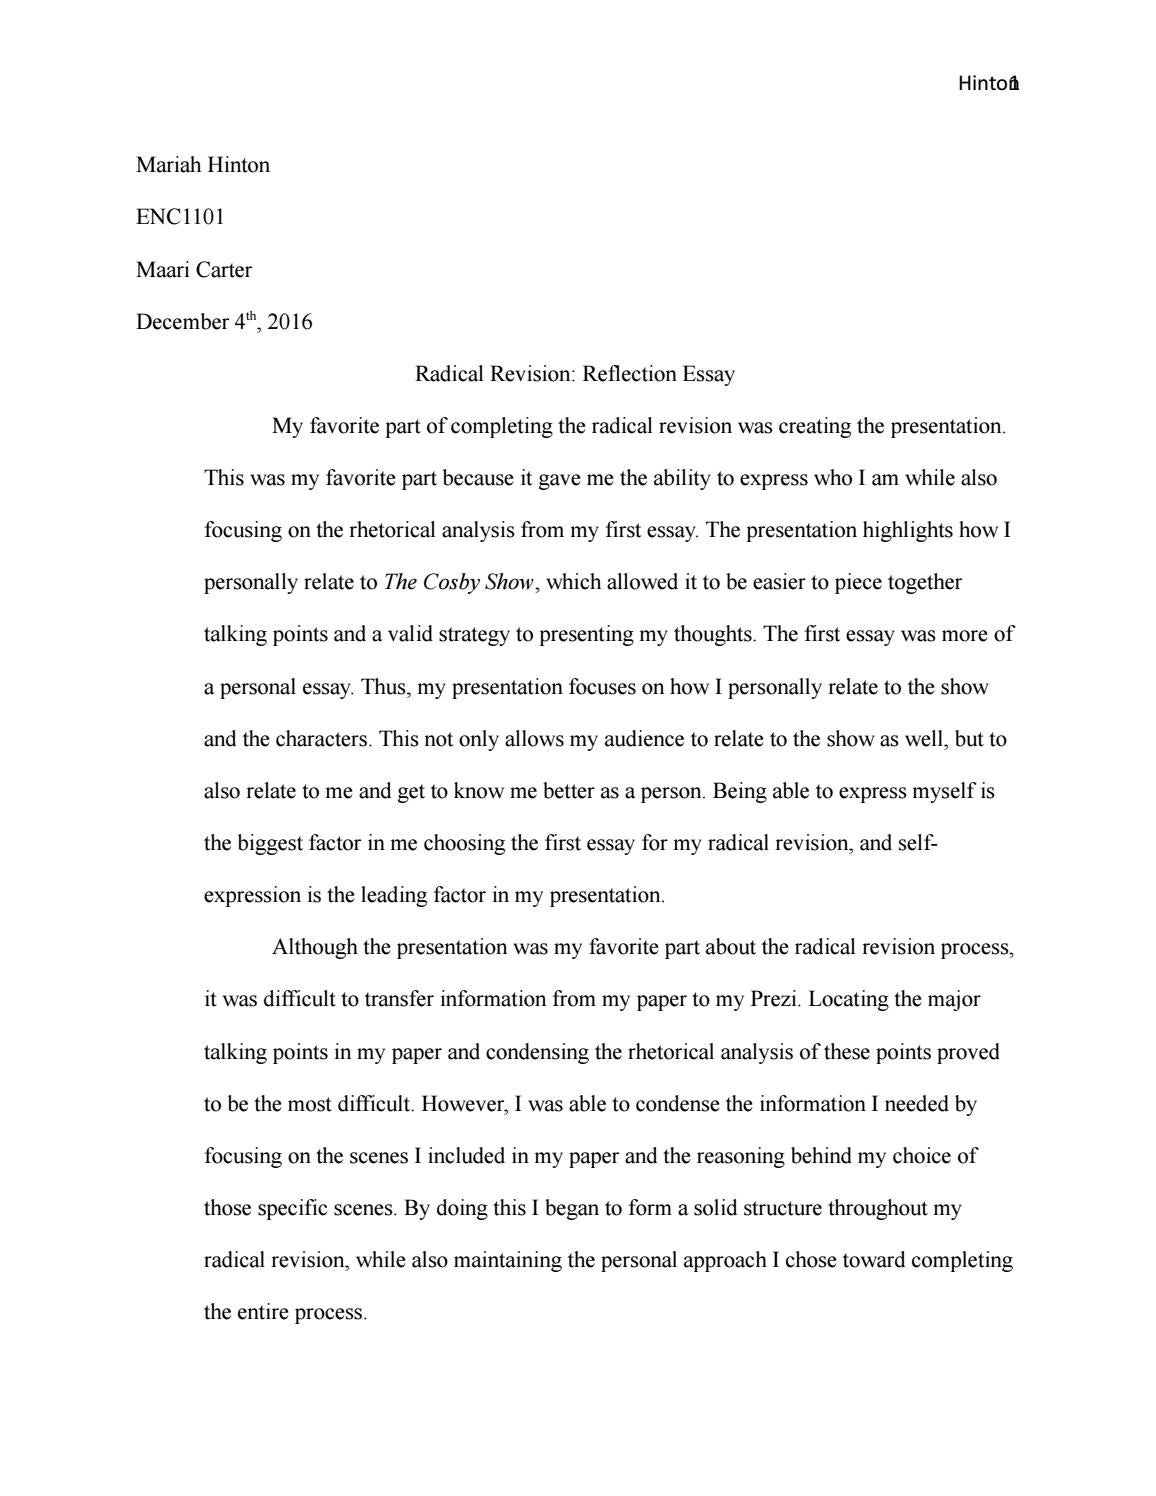 radical revision reflection essay by mariah hinton essay issuu